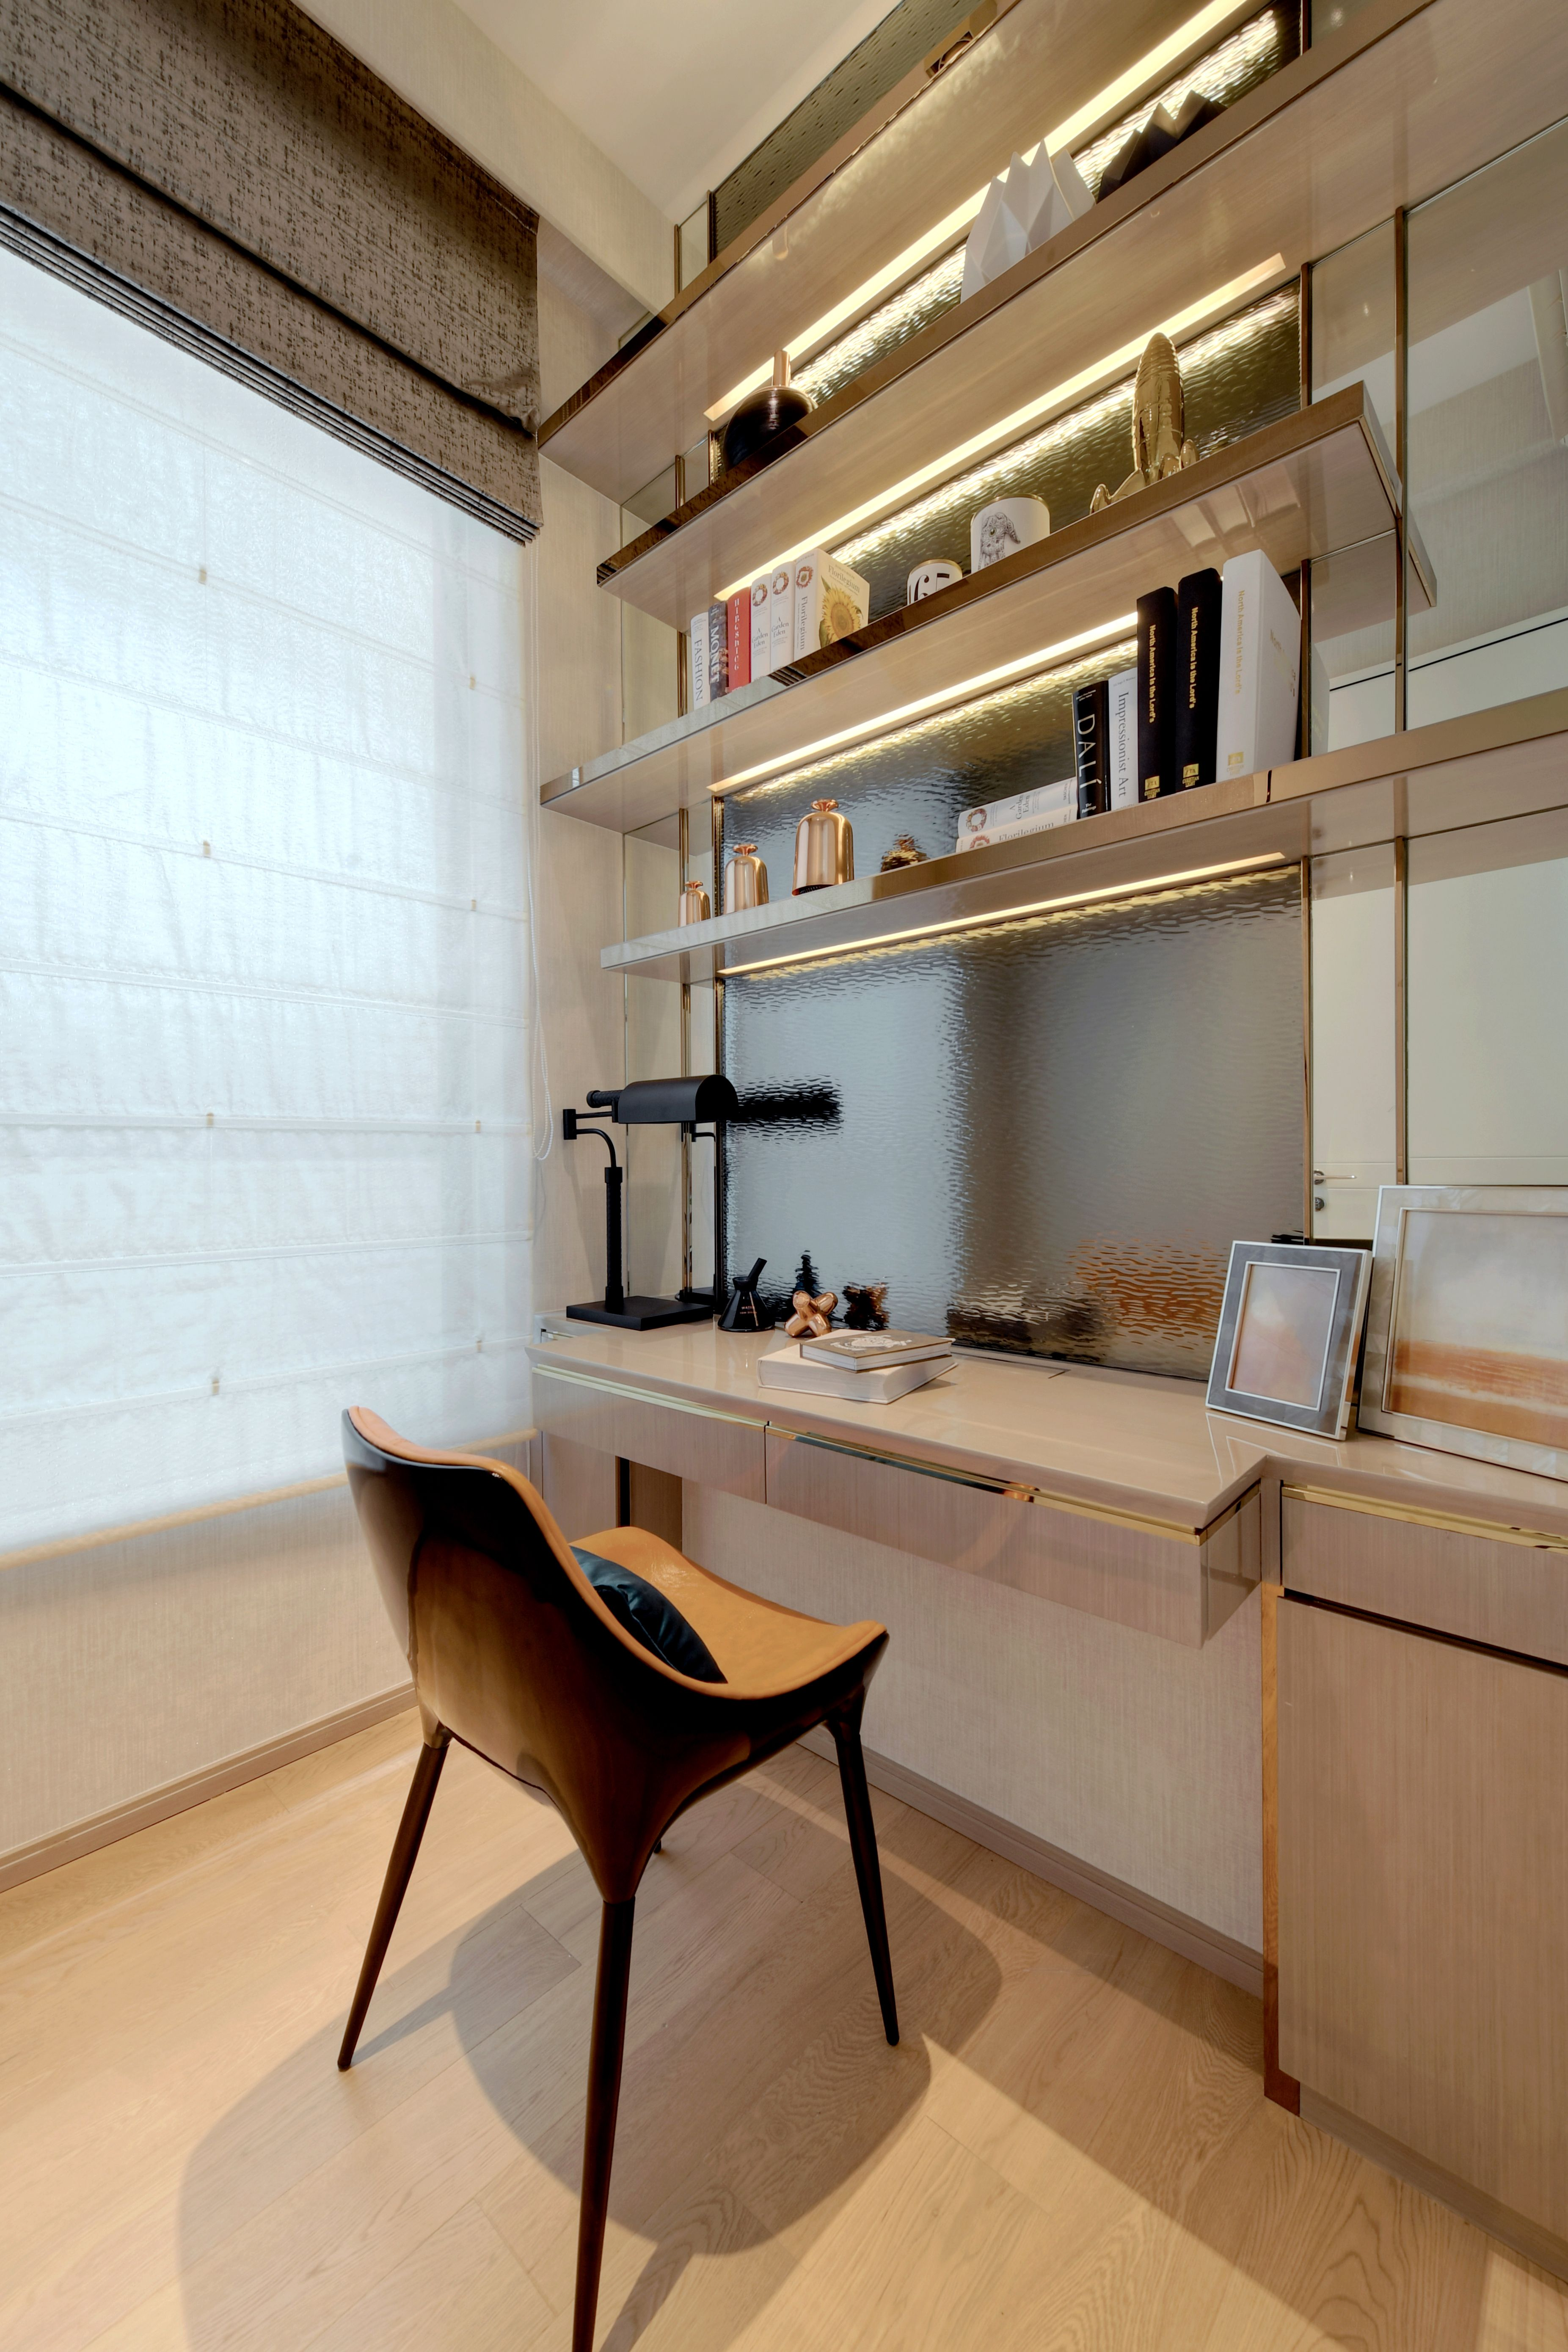 Capri interior design and fitting out works for show house fusiondesignltd hongkong interiordesign fittingout showhouse planning decor styling also rh pinterest